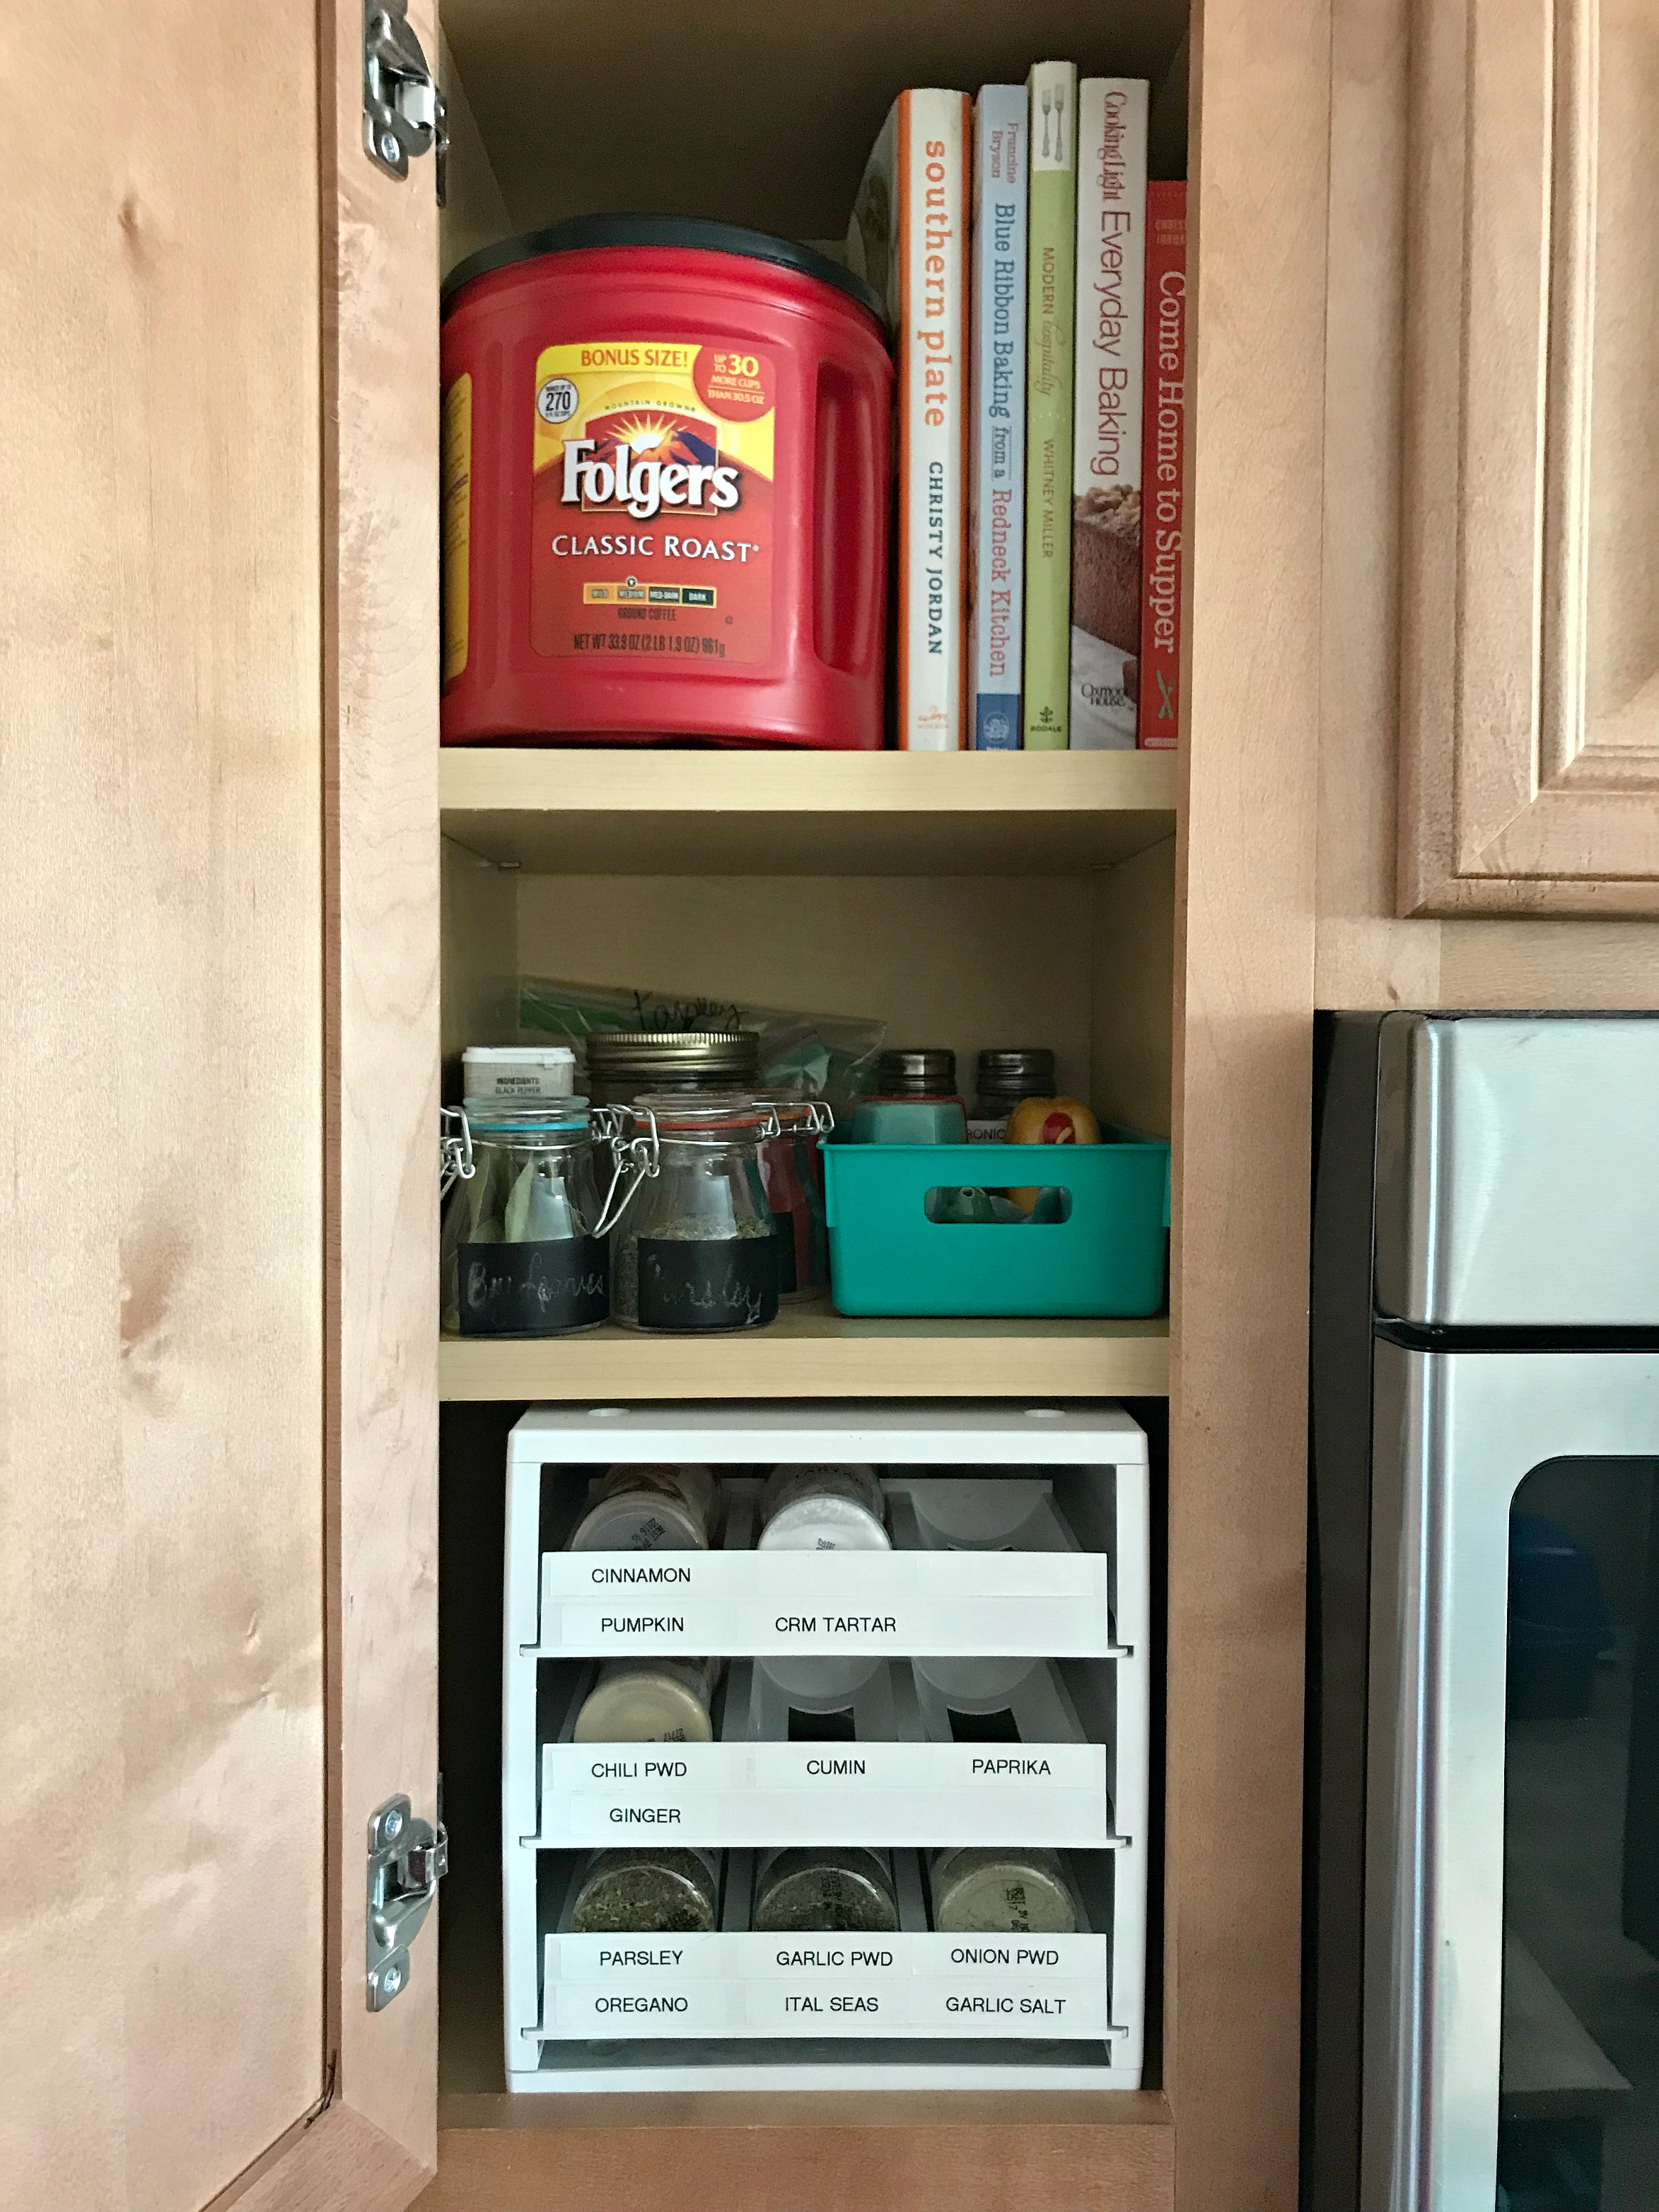 Most Of My Organizing Products Come From The Dollar Tree, But I Really Do  Love My Spice Organizer From Bed Bath And Beyond! It Fits Perfectly In The  Cabinet ...